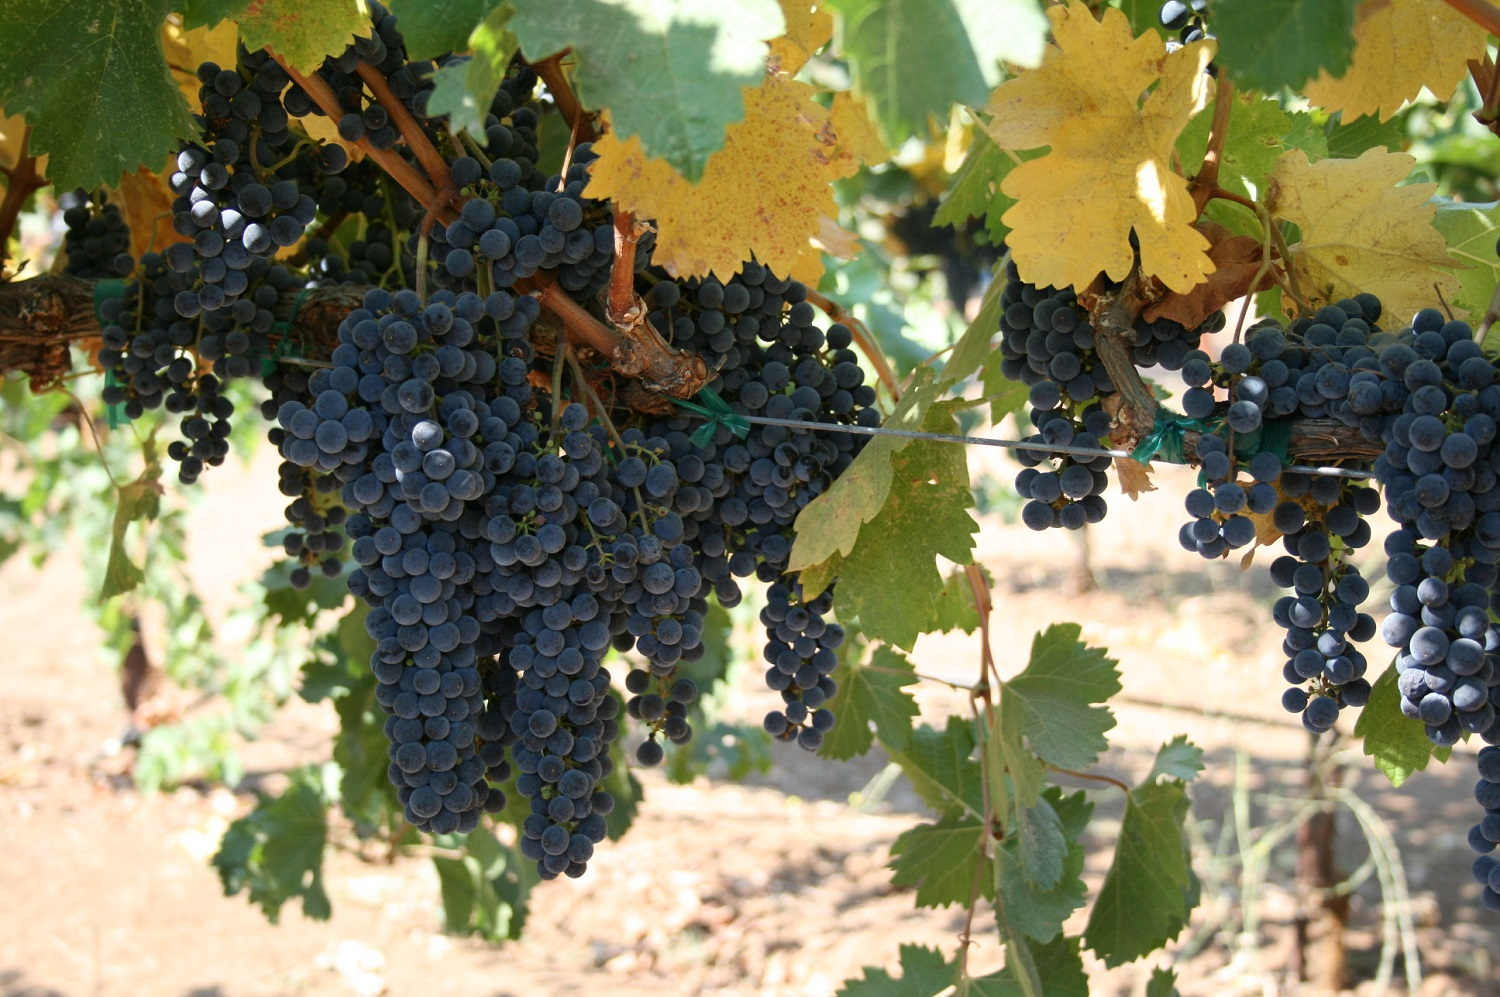 Red wine grape clusters on the vine